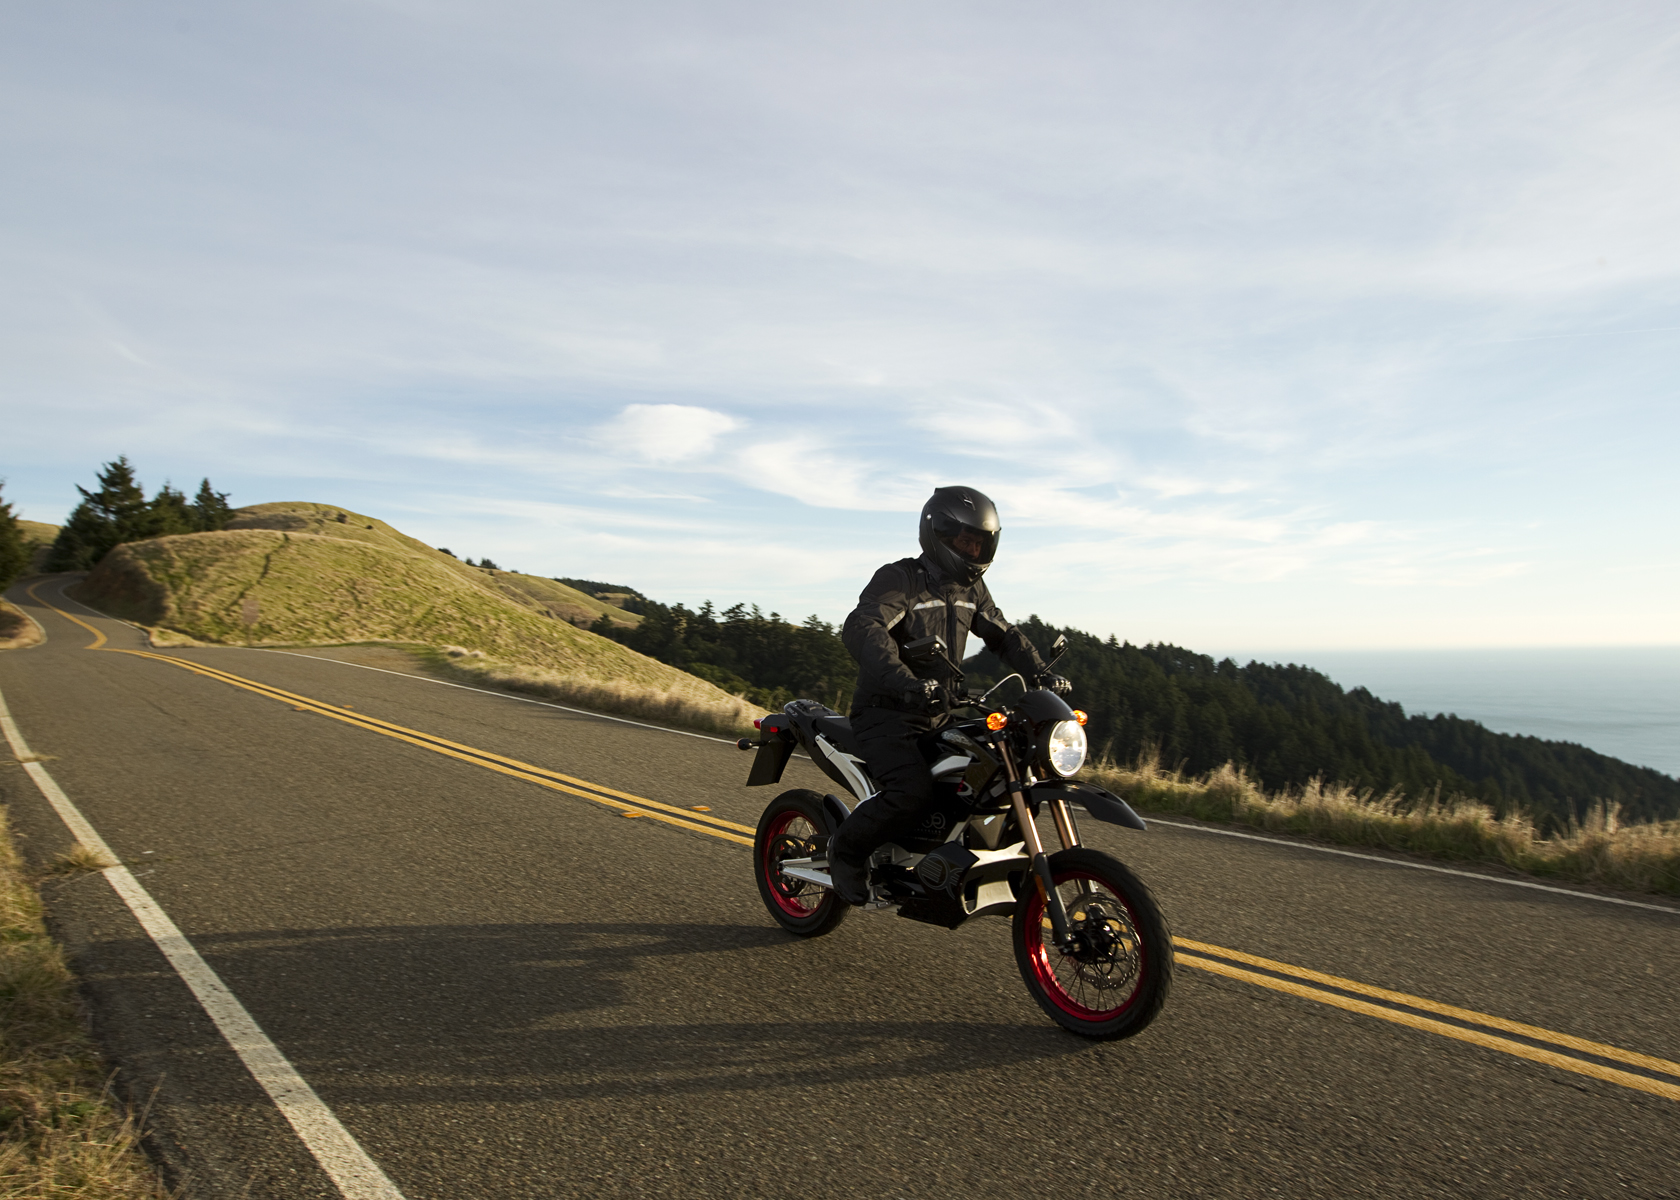 2011 Zero DS Electric Motorcycle: Cruising Downhill